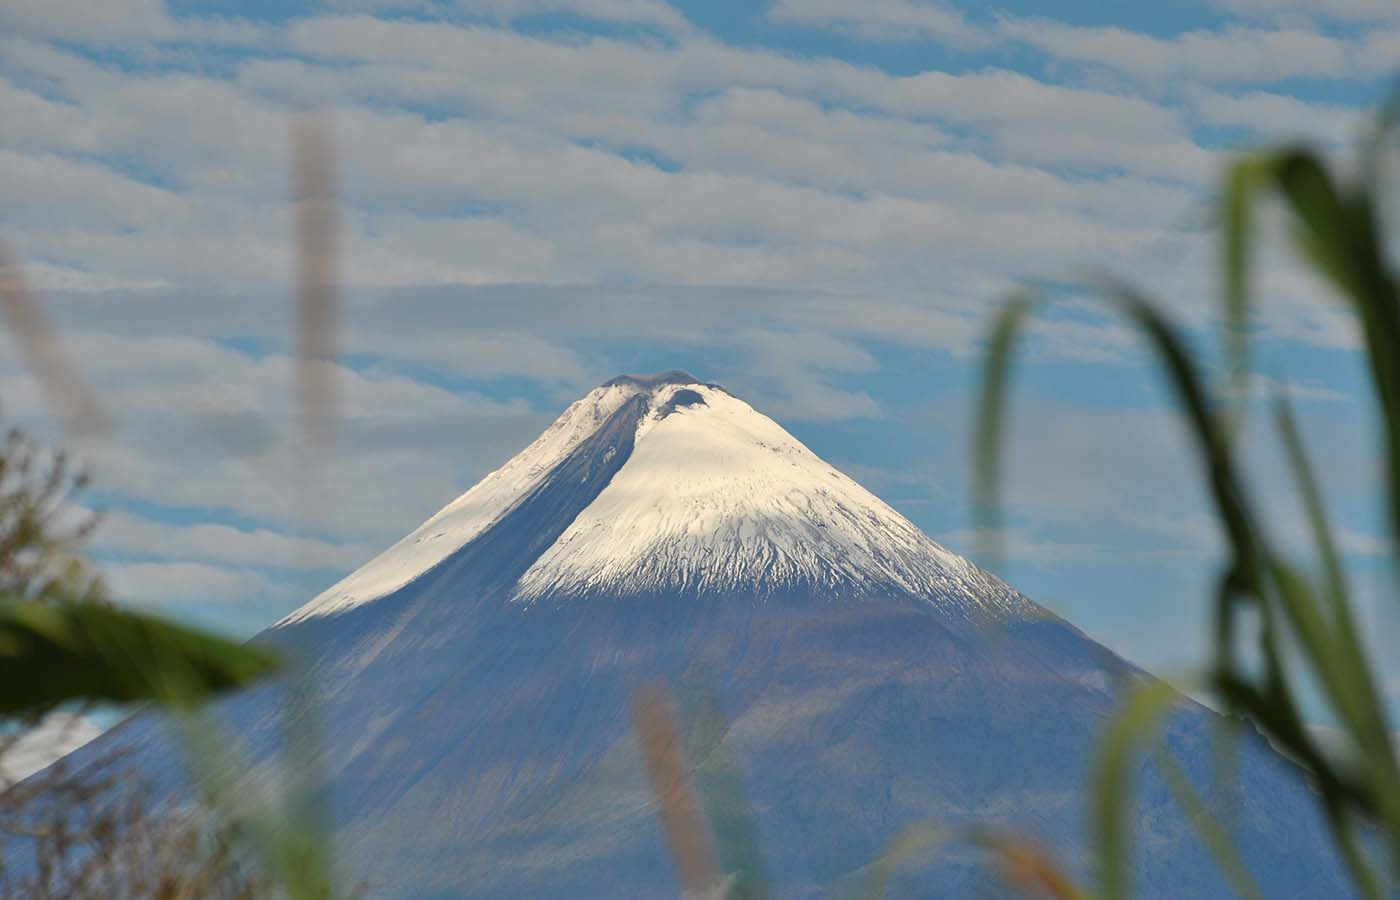 Sangay National Park - Sangay National Park was made a World Heritage Site in 1983. This park spans the provinces of Tungurahua, Morono Santiago, and Chimborazo and is known for its many varied ecosystems, with glaciers, rainforests, plains, volcanoes, and more.